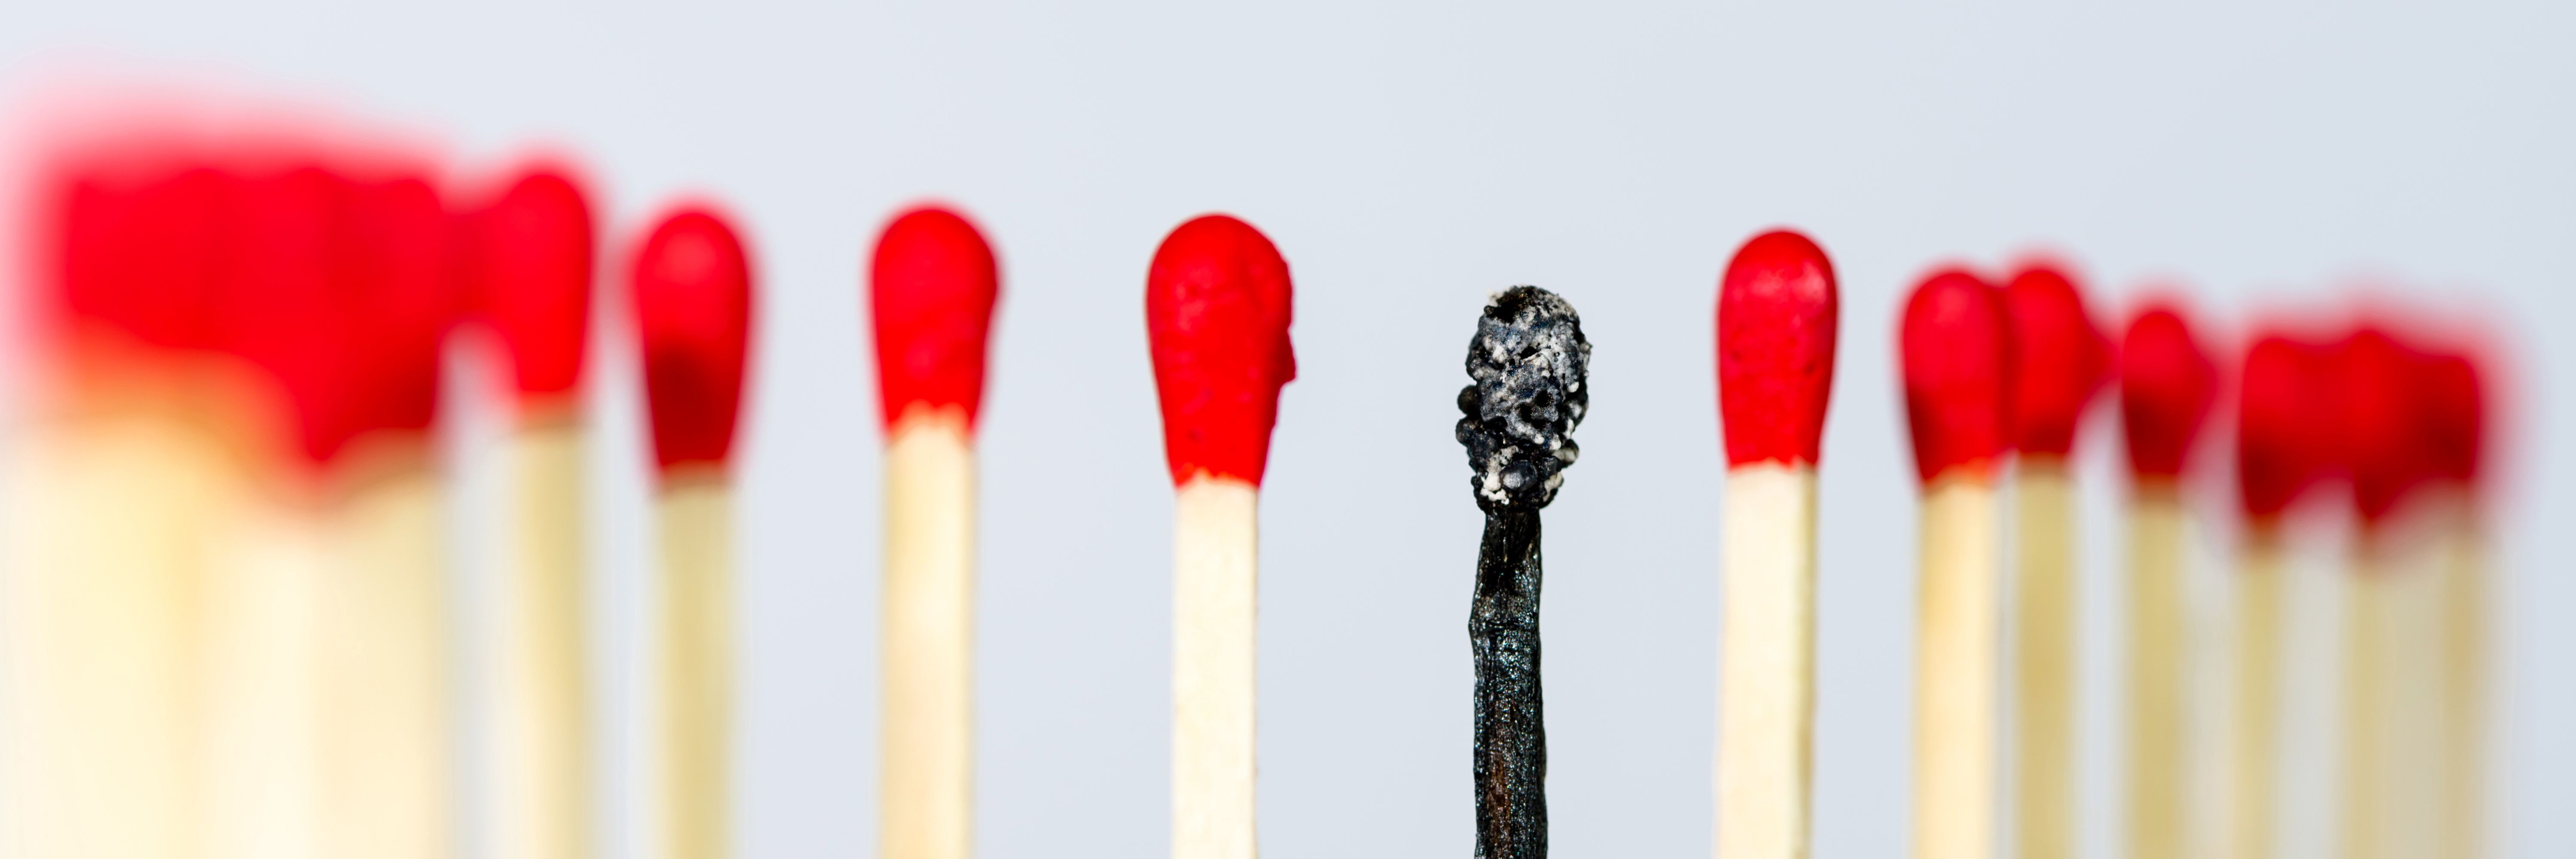 Re-energise Your Business Mojo: Combat Founders' Fatigue and Burnout